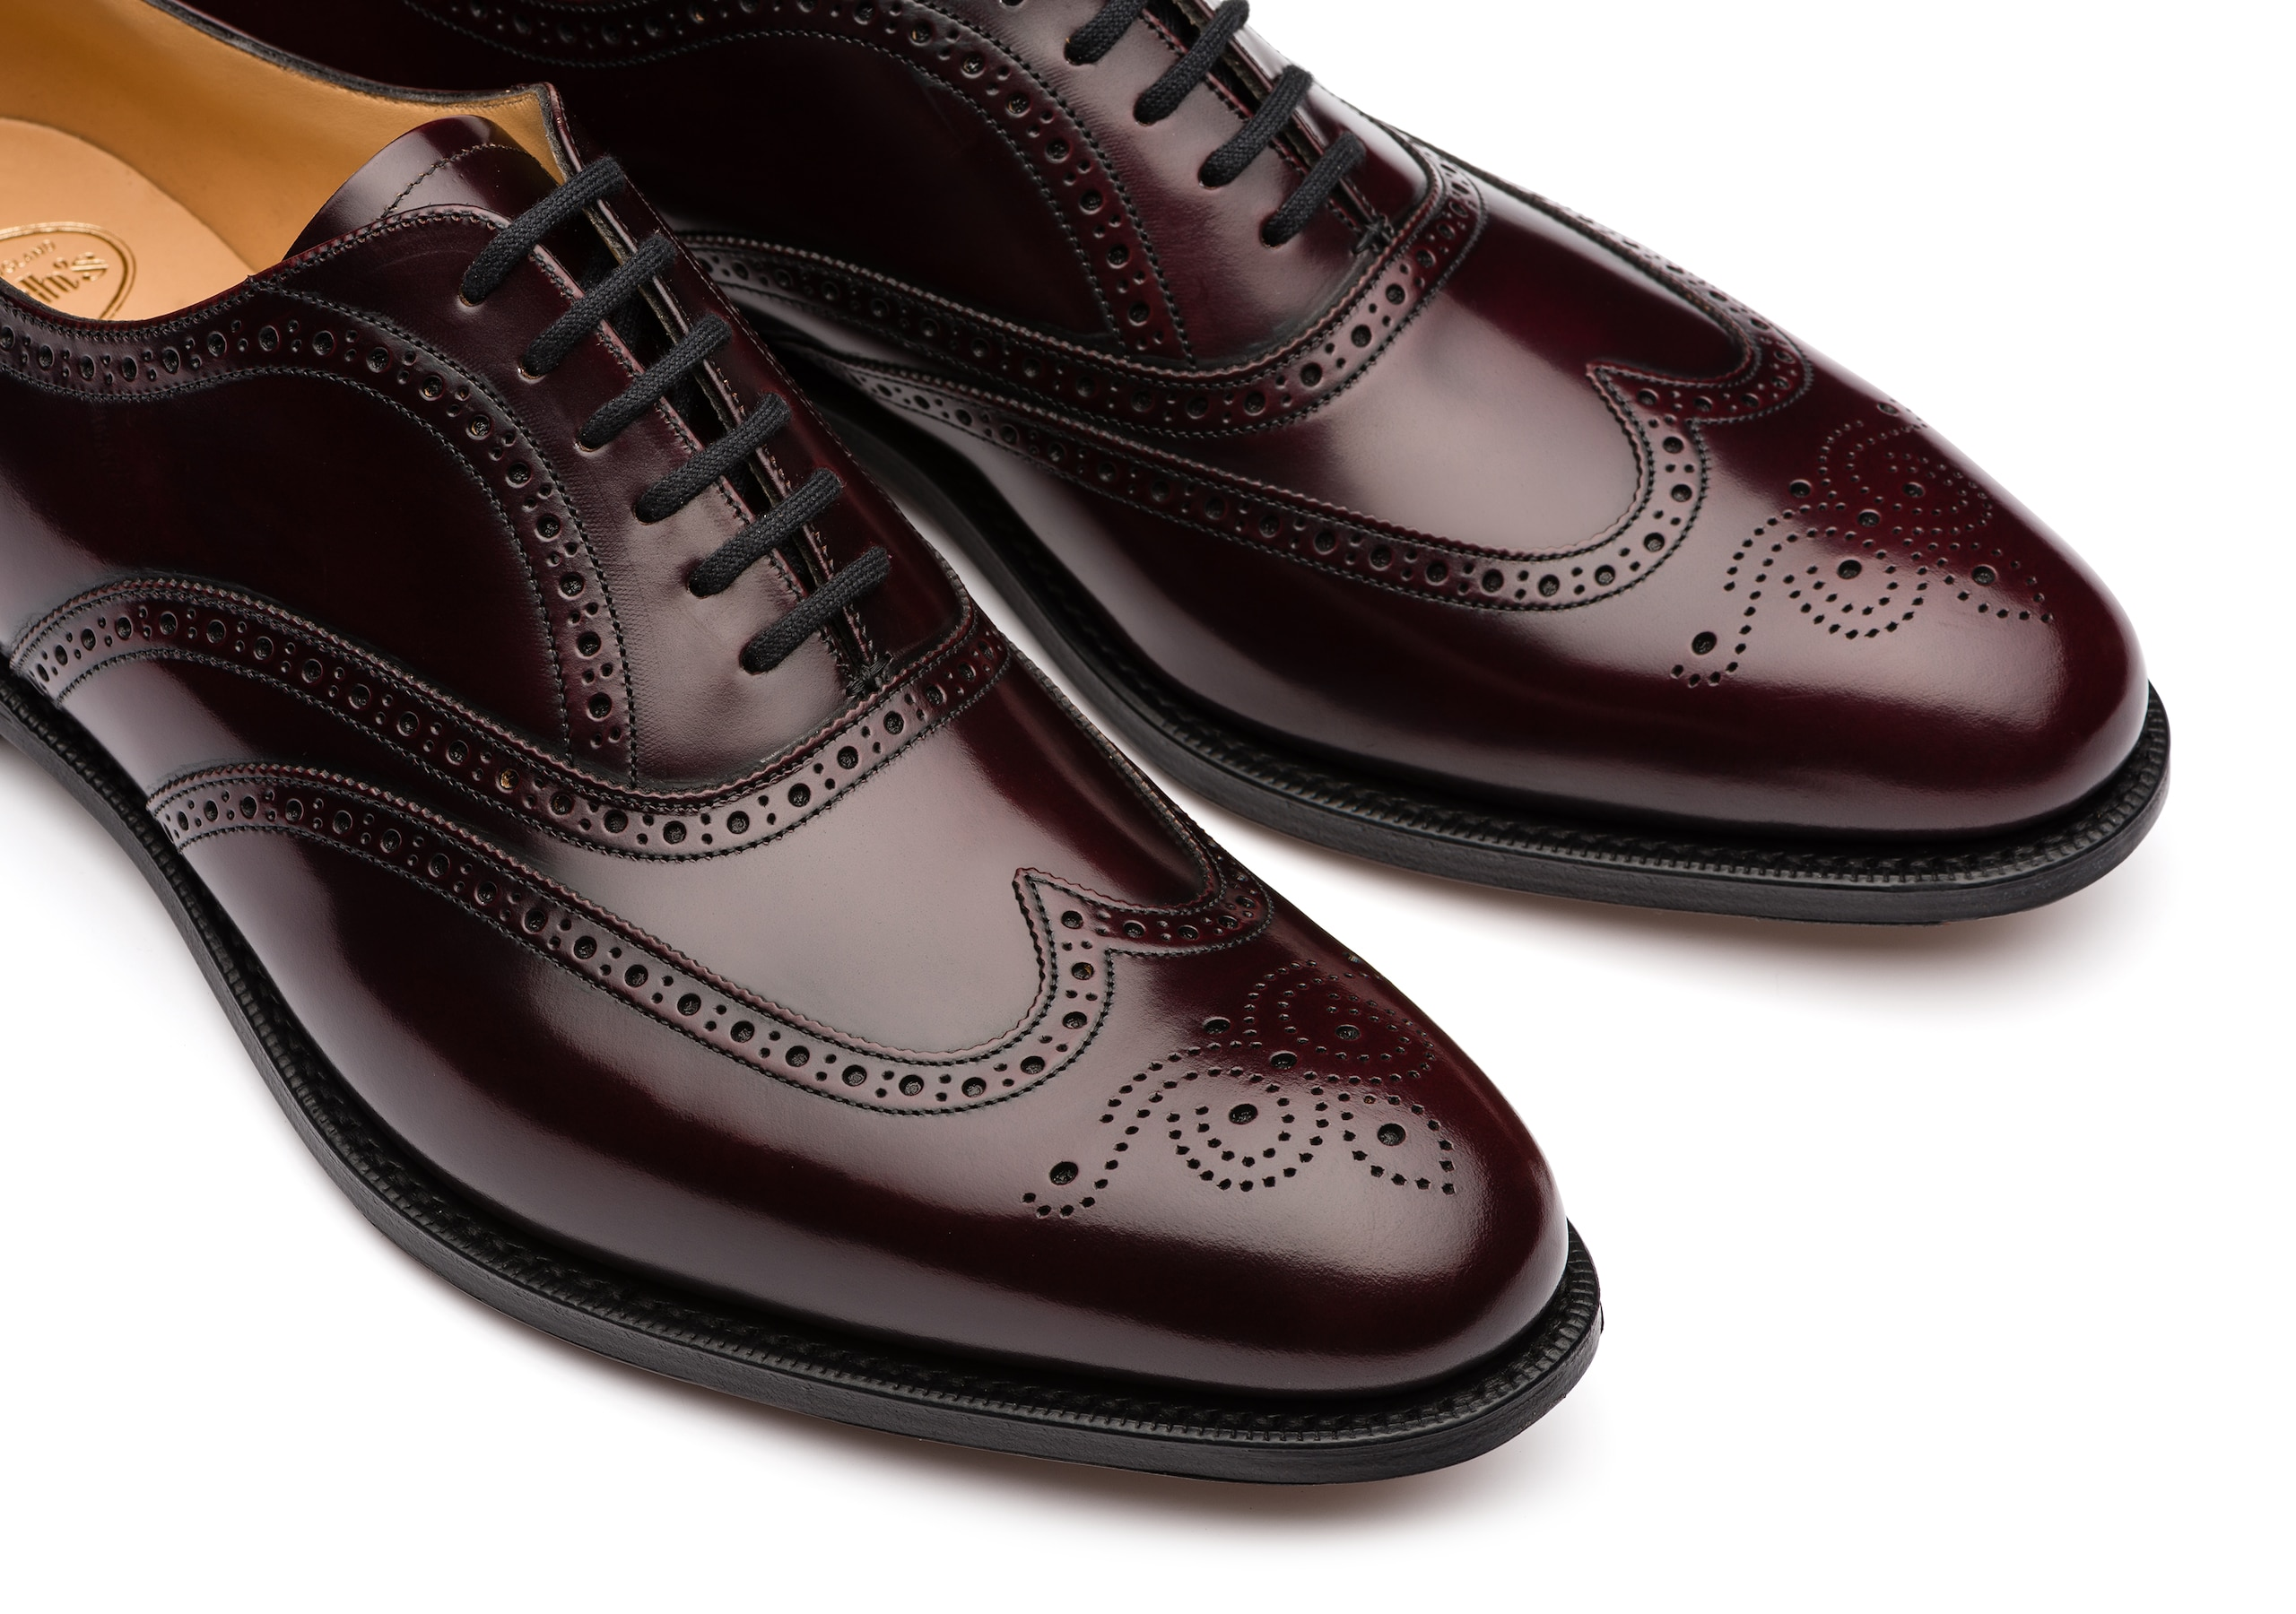 Berlin Church's Polished Binder Oxford Brogue Burgundy